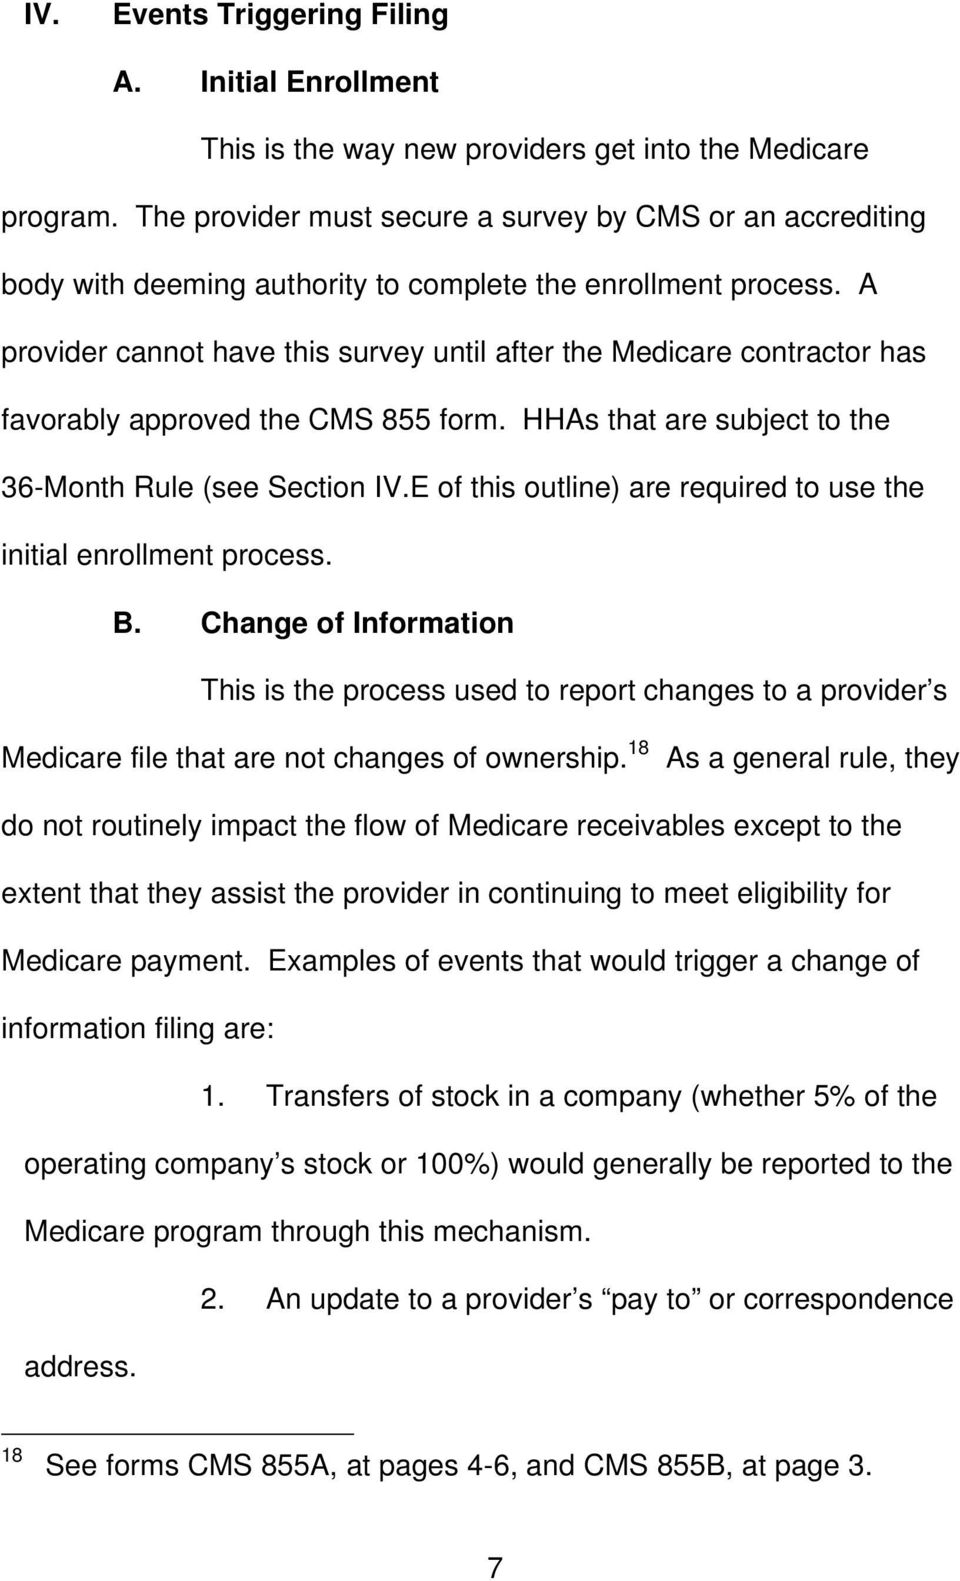 A provider cannot have this survey until after the Medicare contractor has favorably approved the CMS 855 form. HHAs that are subject to the 36-Month Rule (see Section IV.